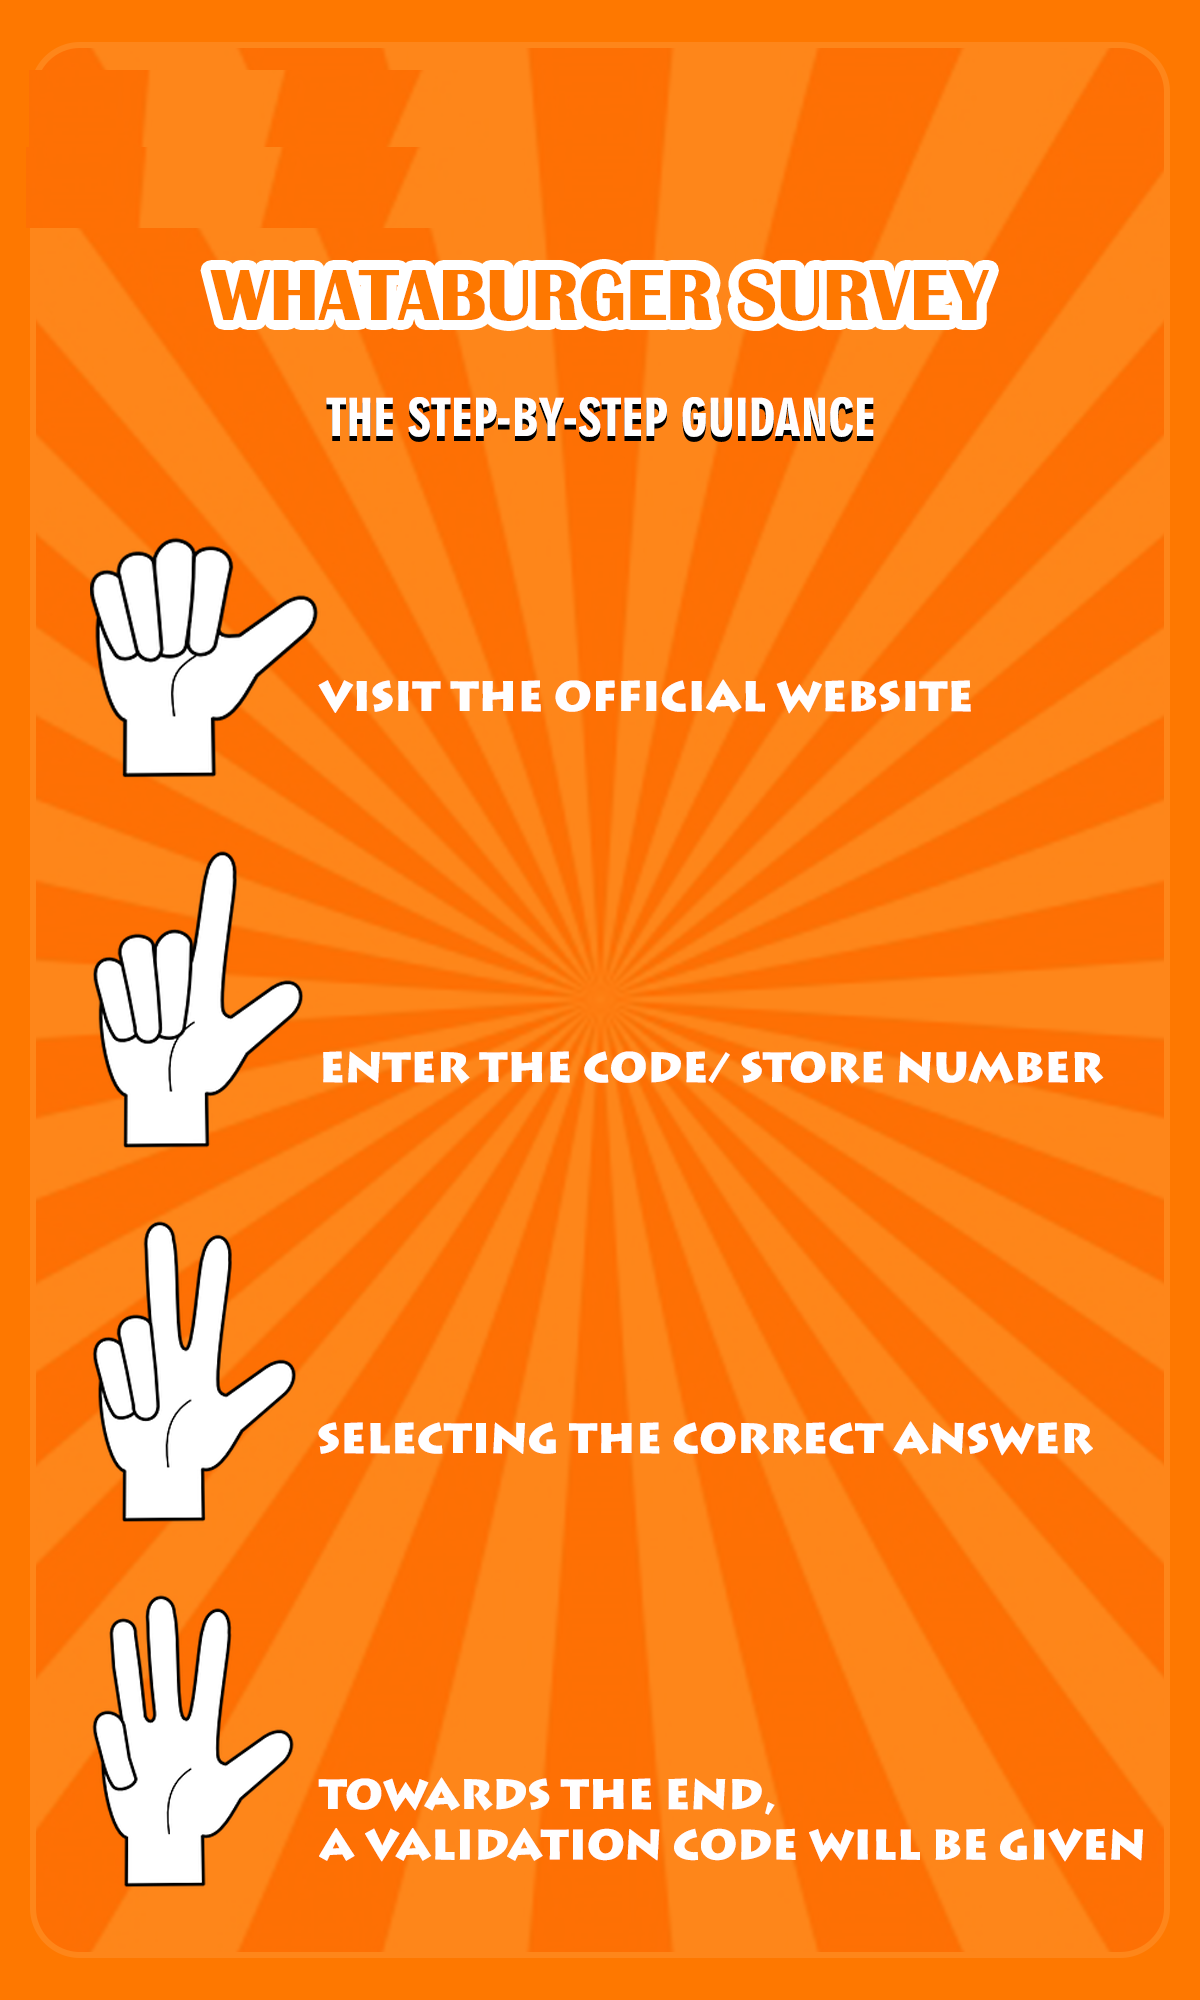 Steps of Whataburger Customer Satisfaction Survey